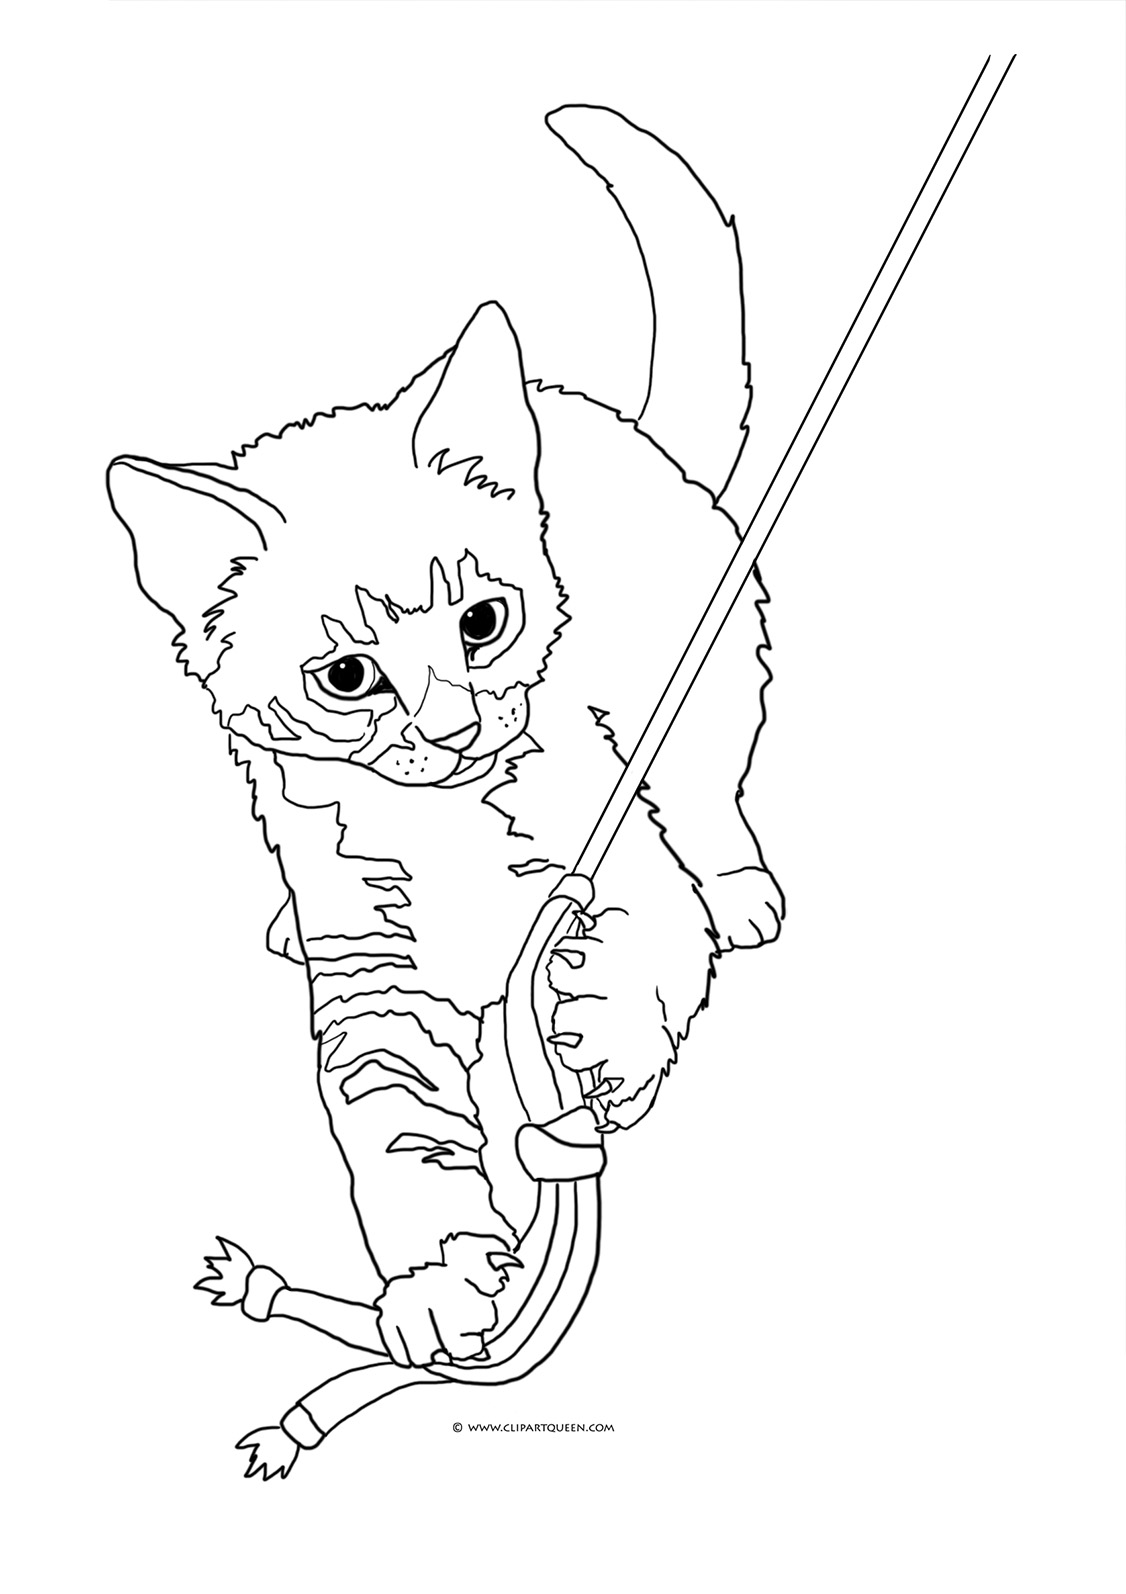 cats and kitten coloring pages - photo#43